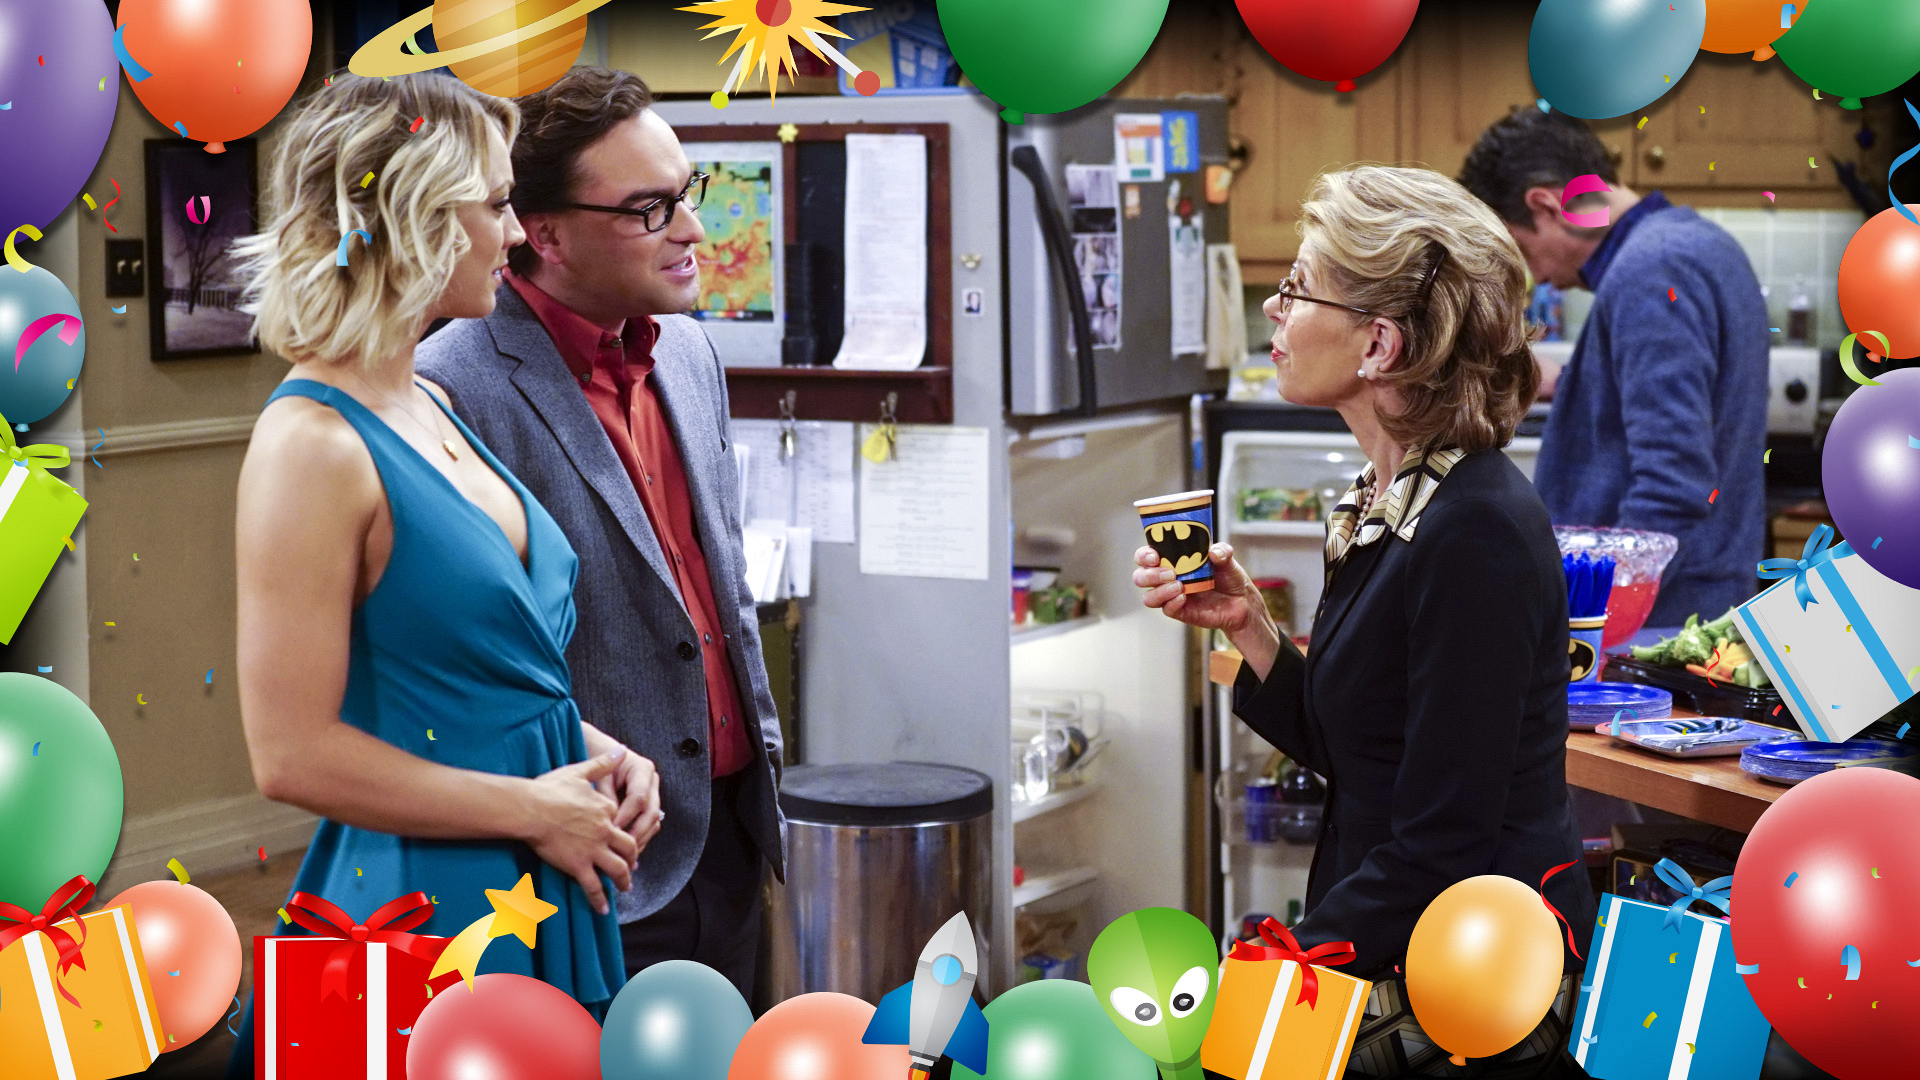 Penny and Leonard visit with Beverly Hofstadter, who RSVP'd for Sheldon's soirée.